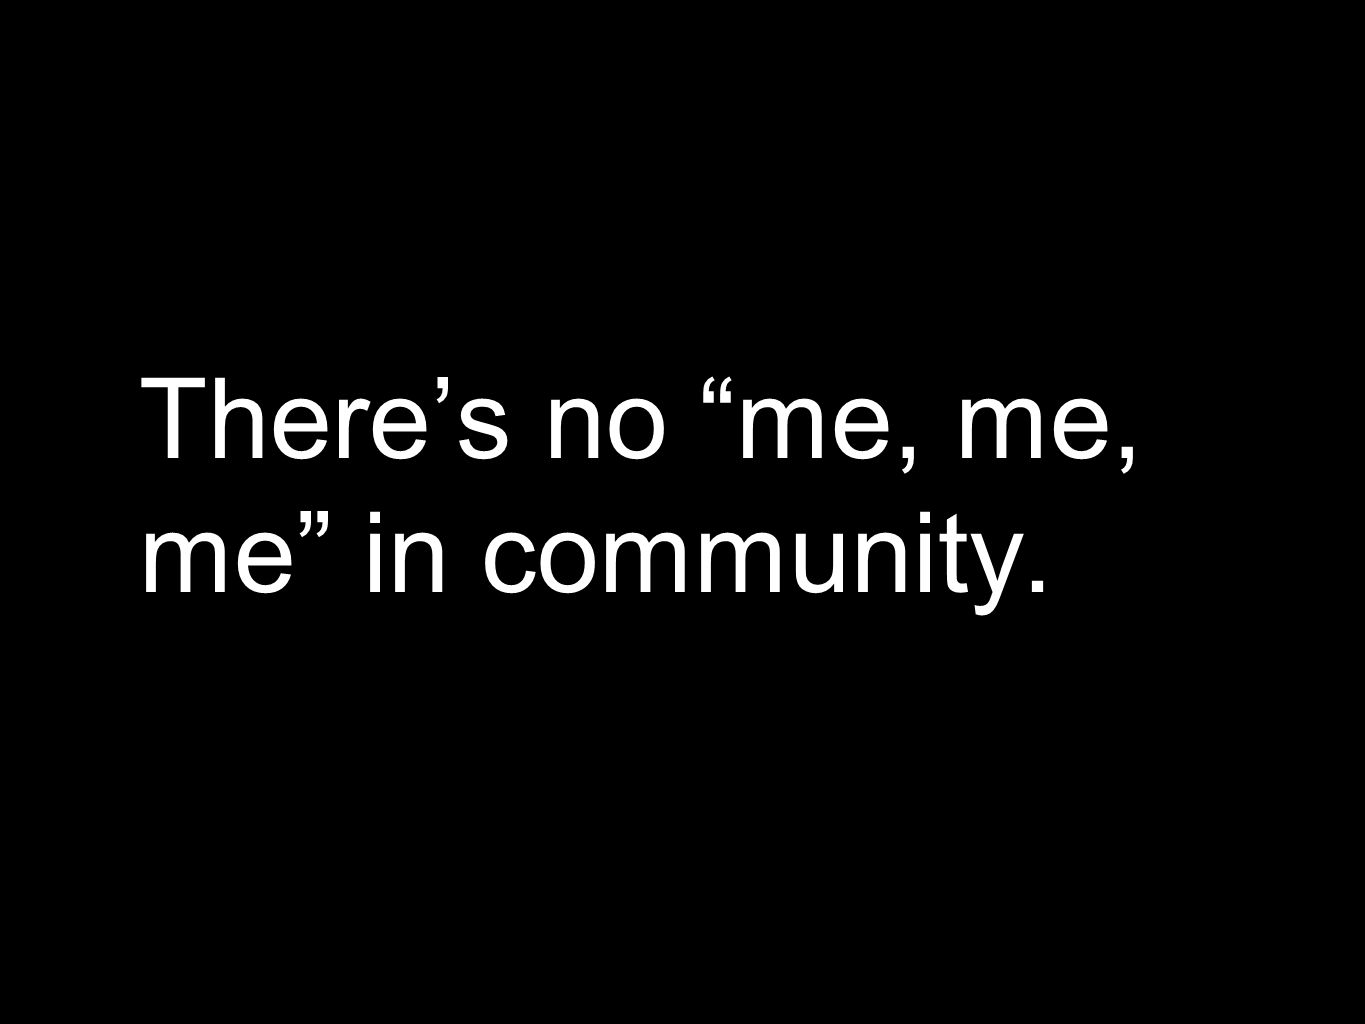 Theres no me, me, me in community.